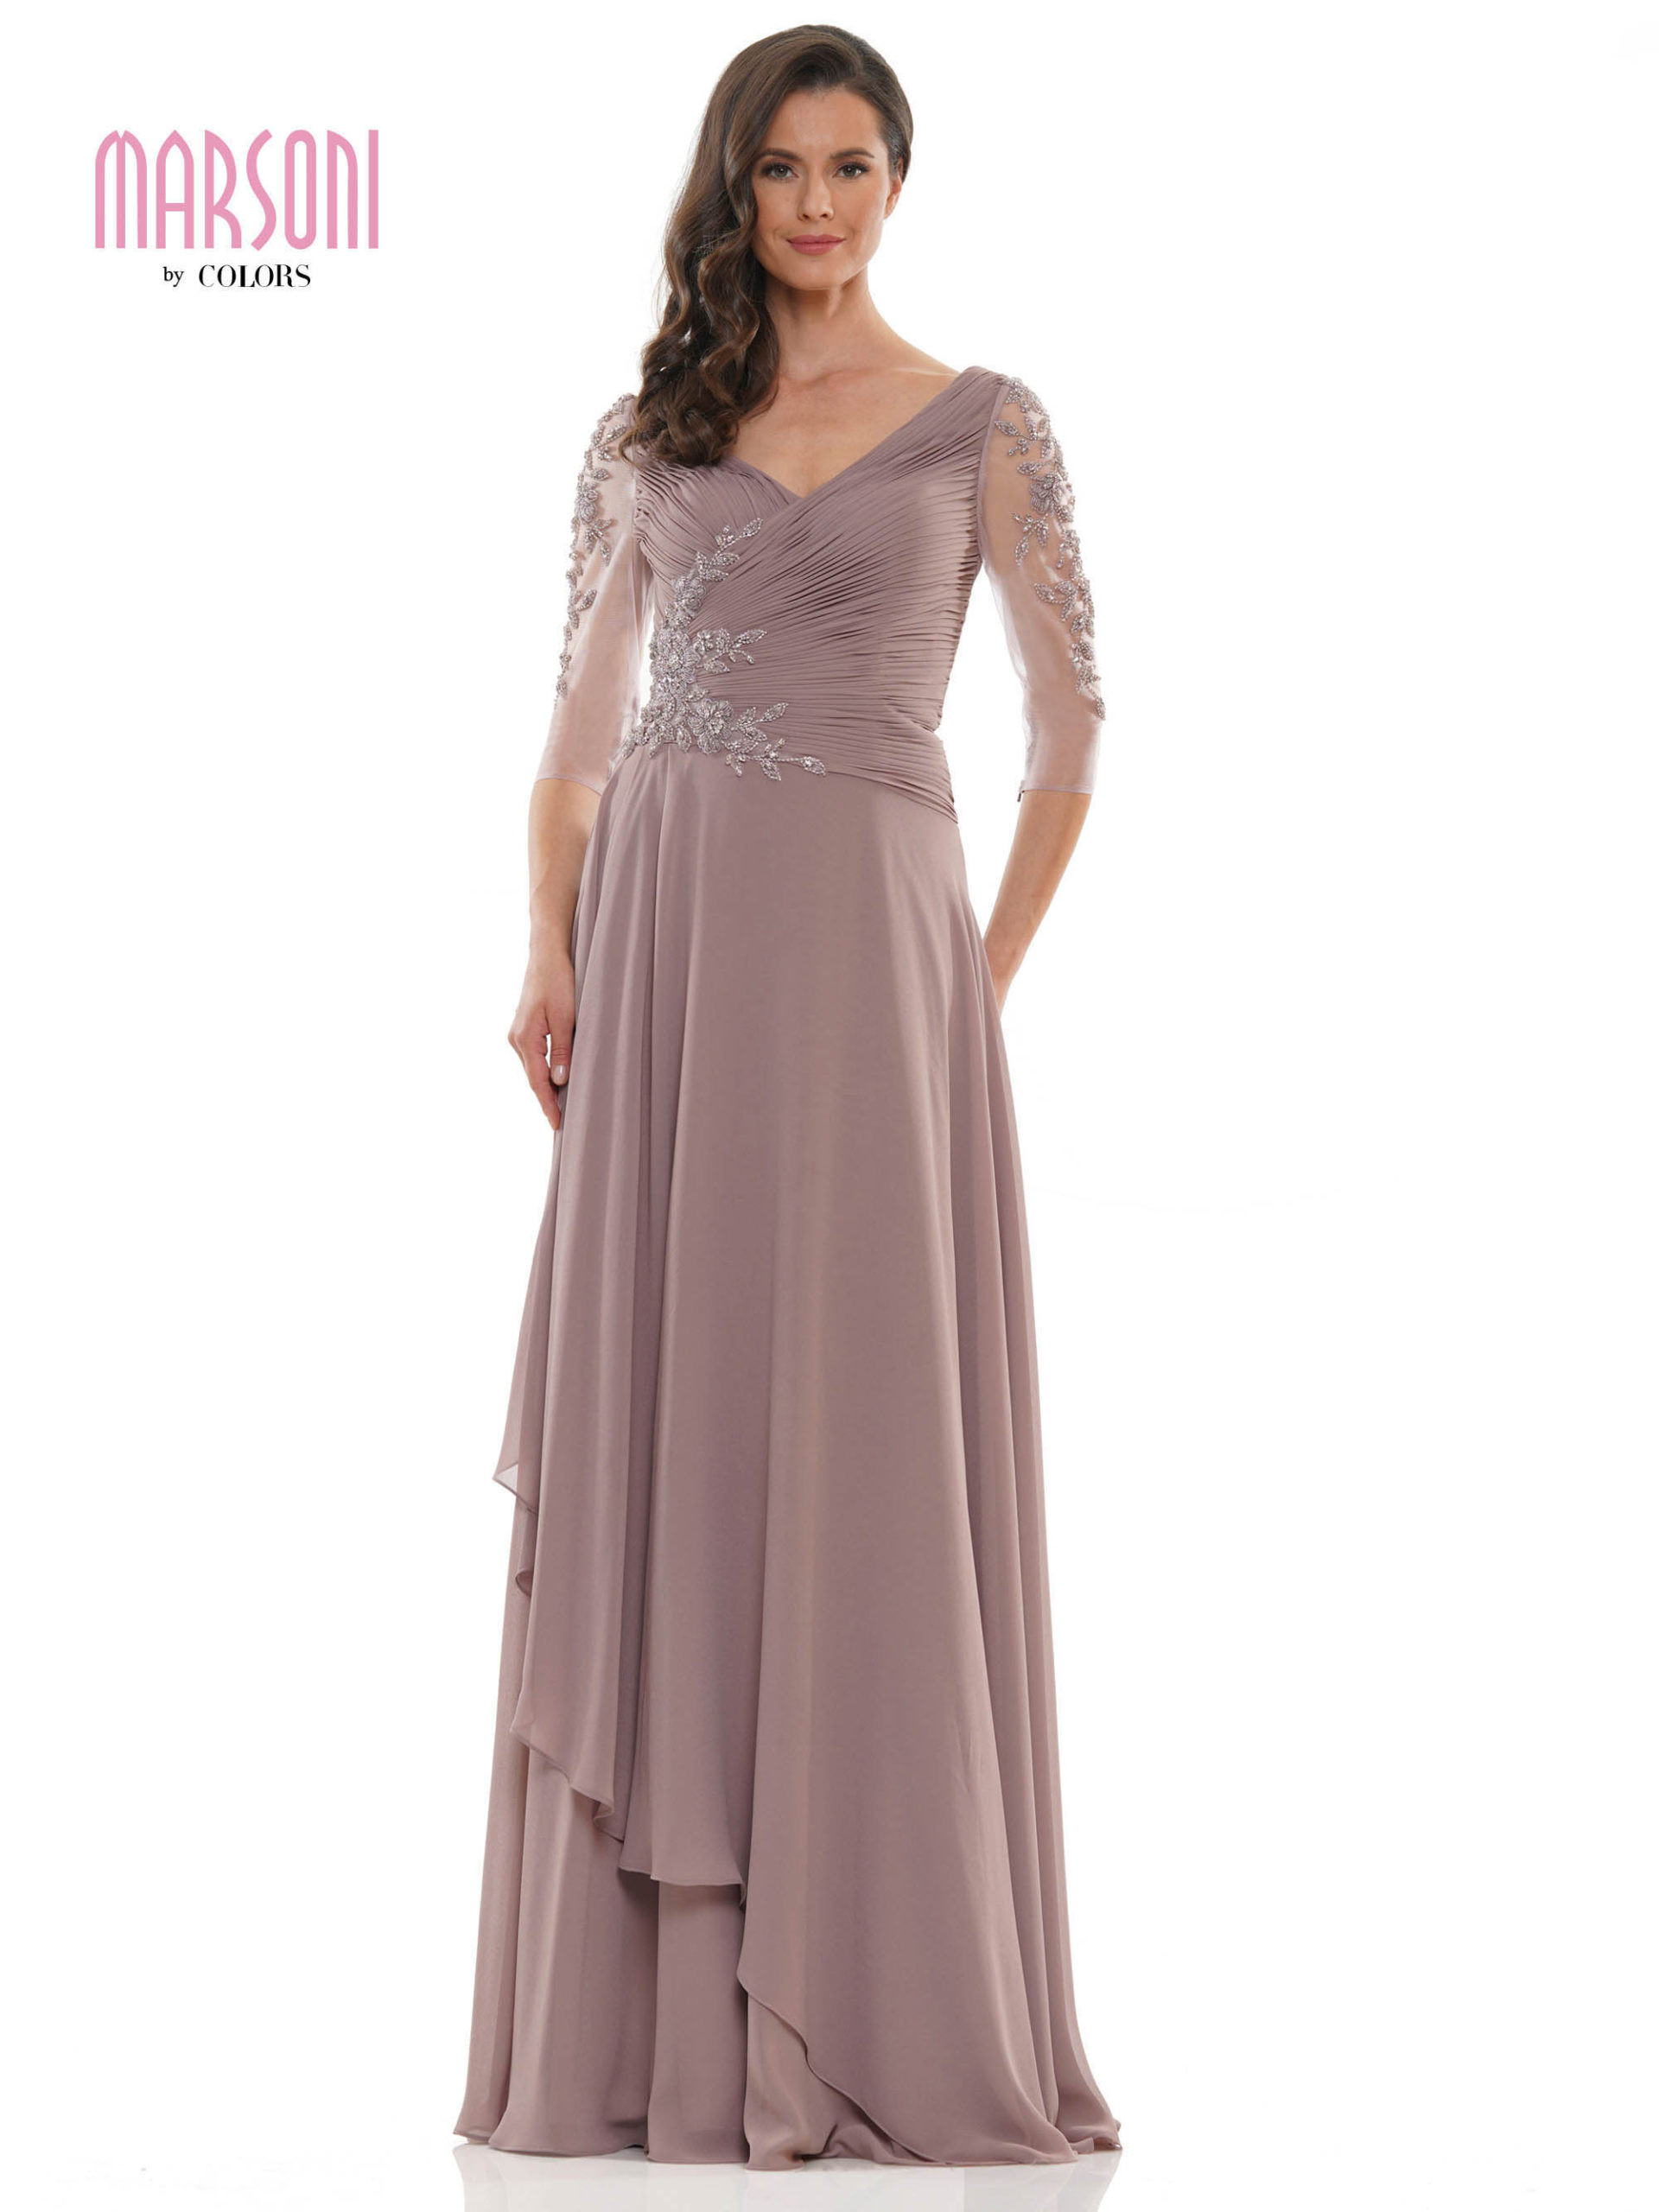 A-line dress with V-neck, shirring bodice,3/4 sleeves with beaded, ruffles skirt